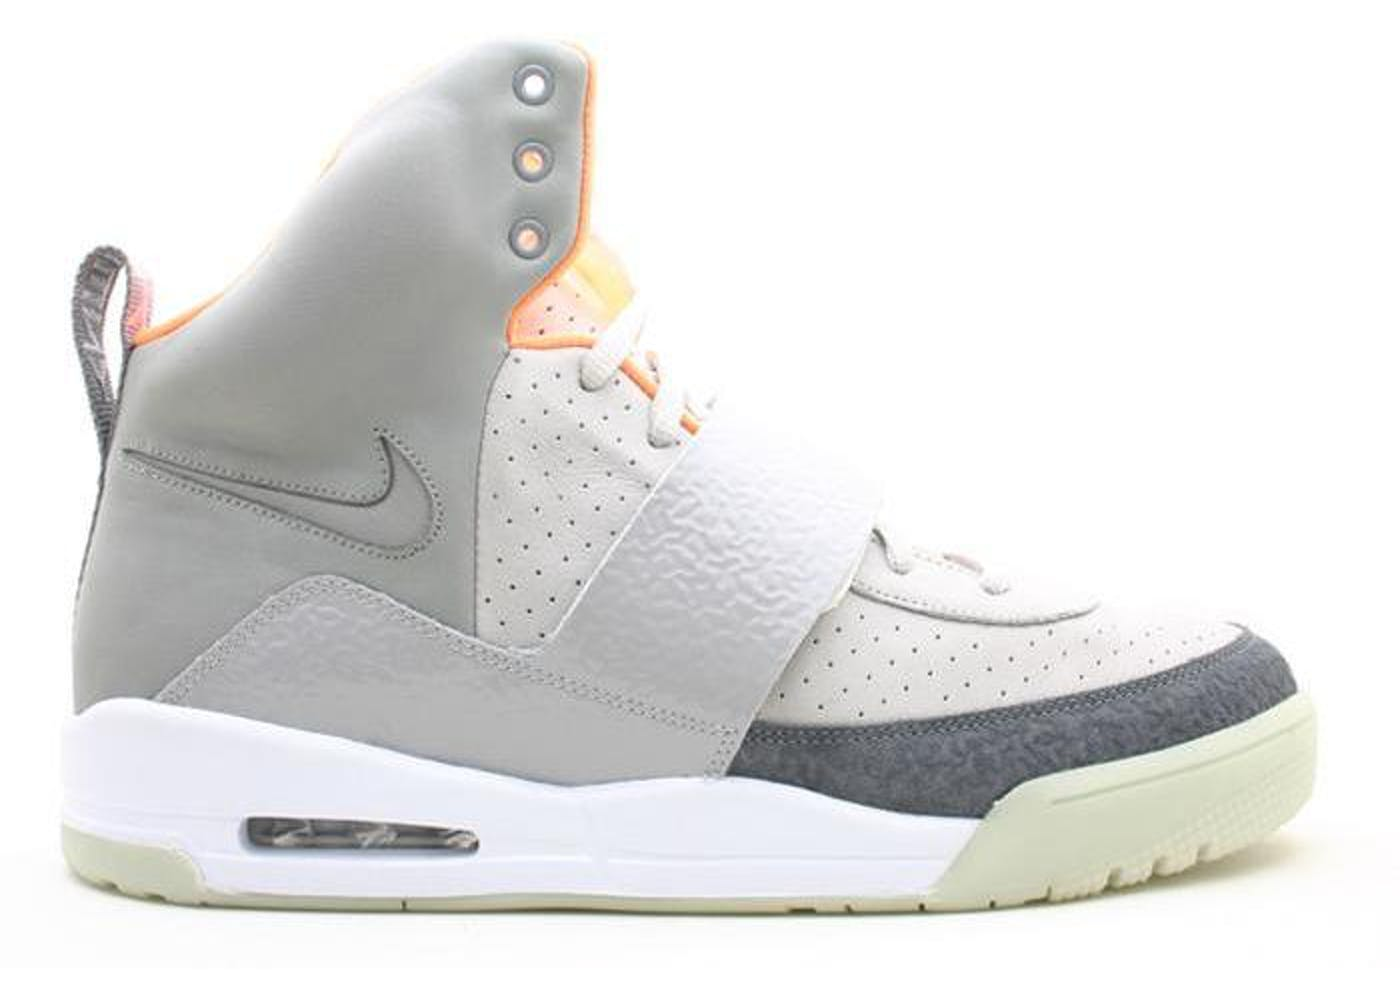 Air Yeezy Nike Shoes